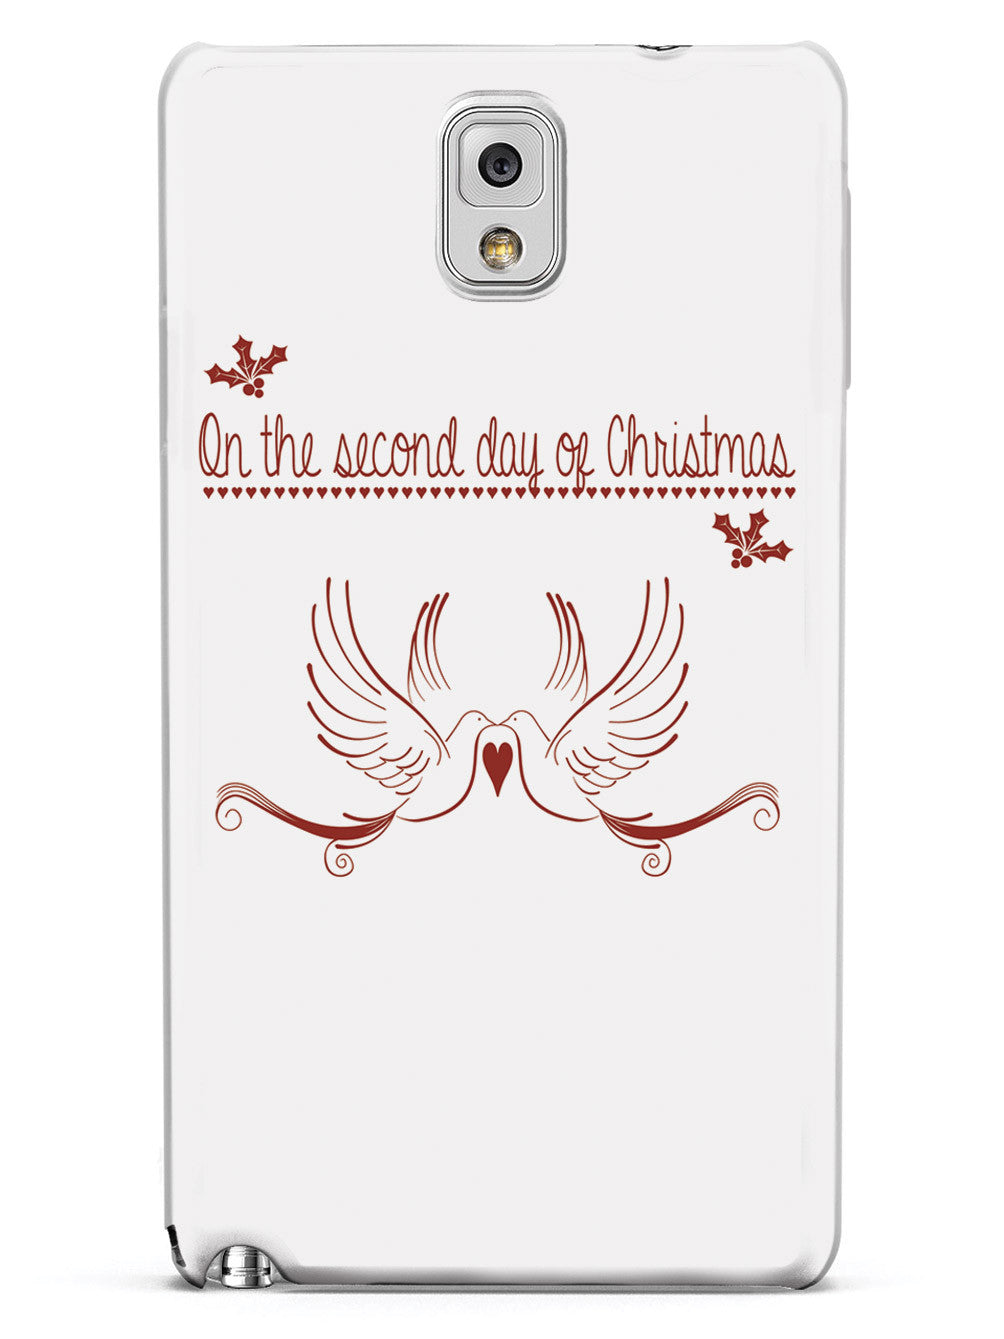 On the Second Day of Christmas - Two Turtle Doves Case